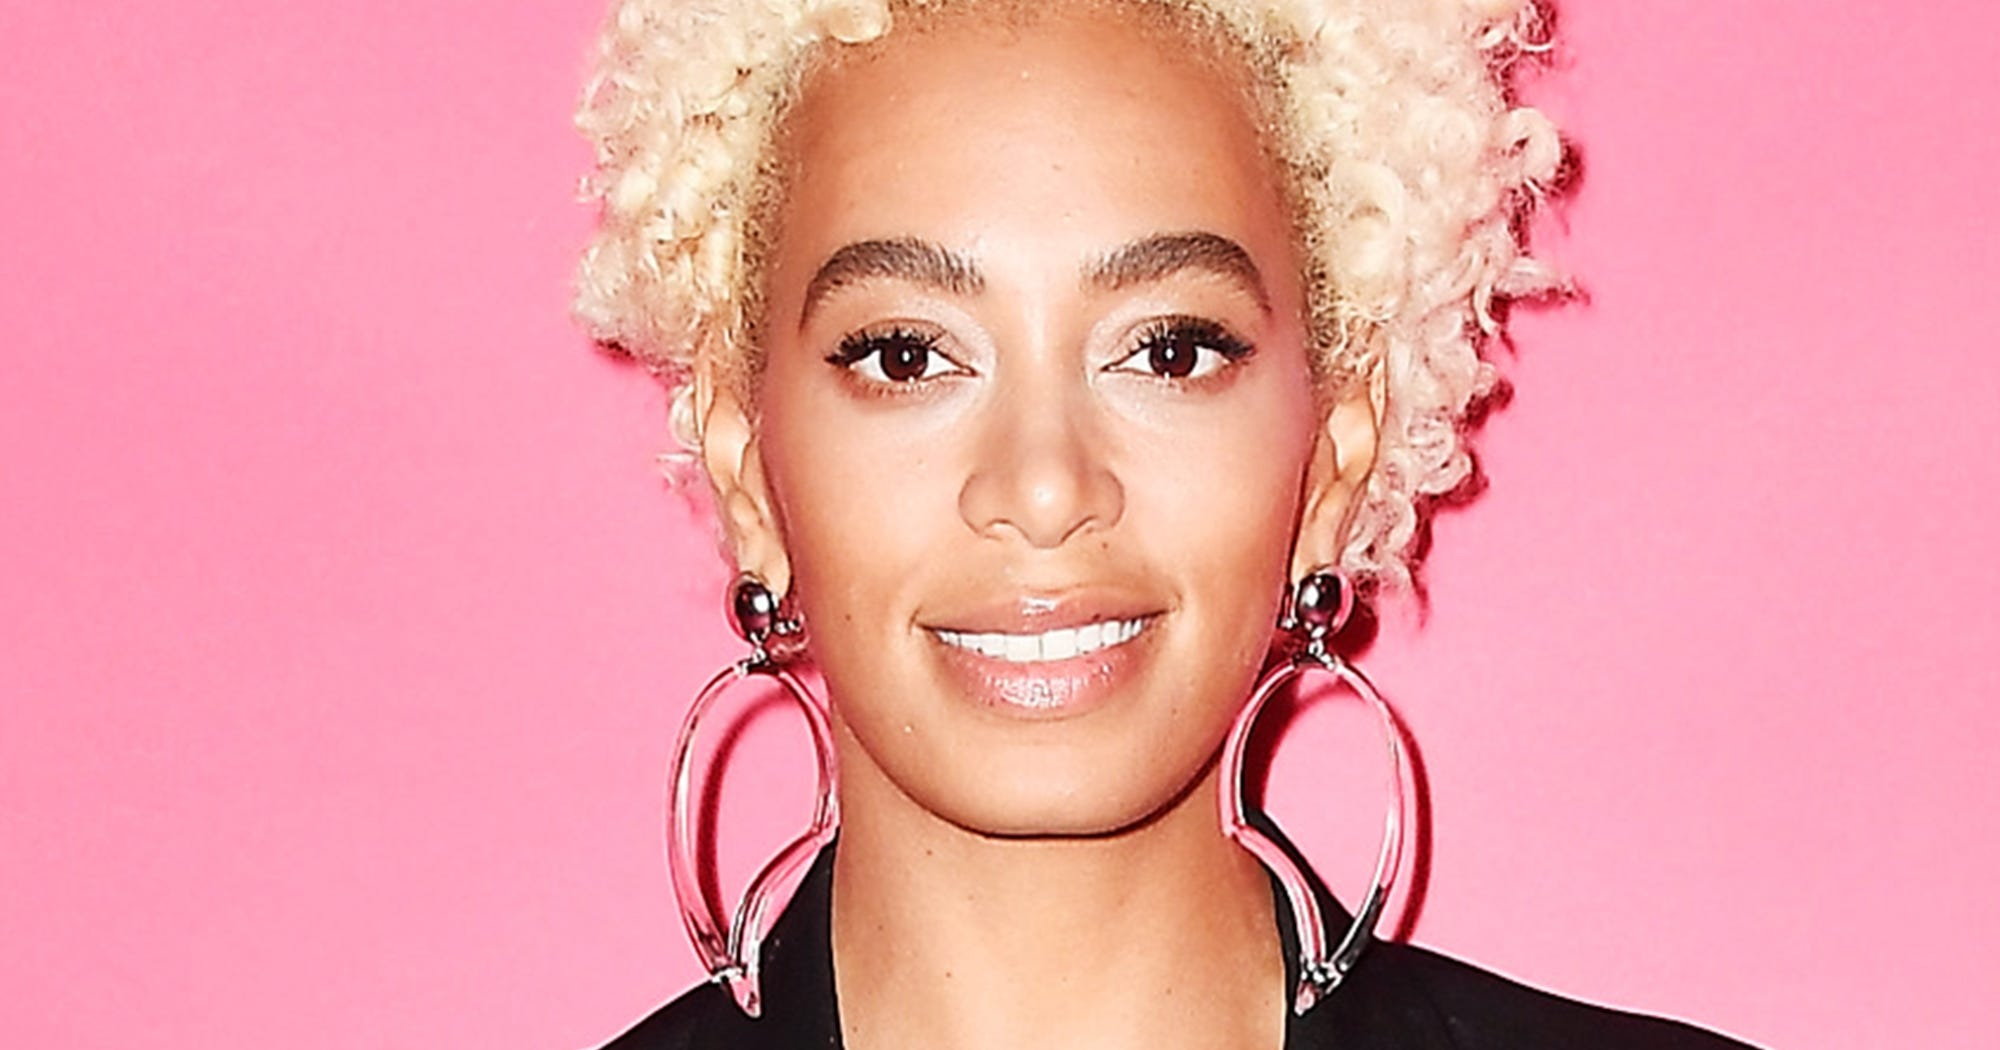 The Astrological Meaning Behind Solange's New Merch